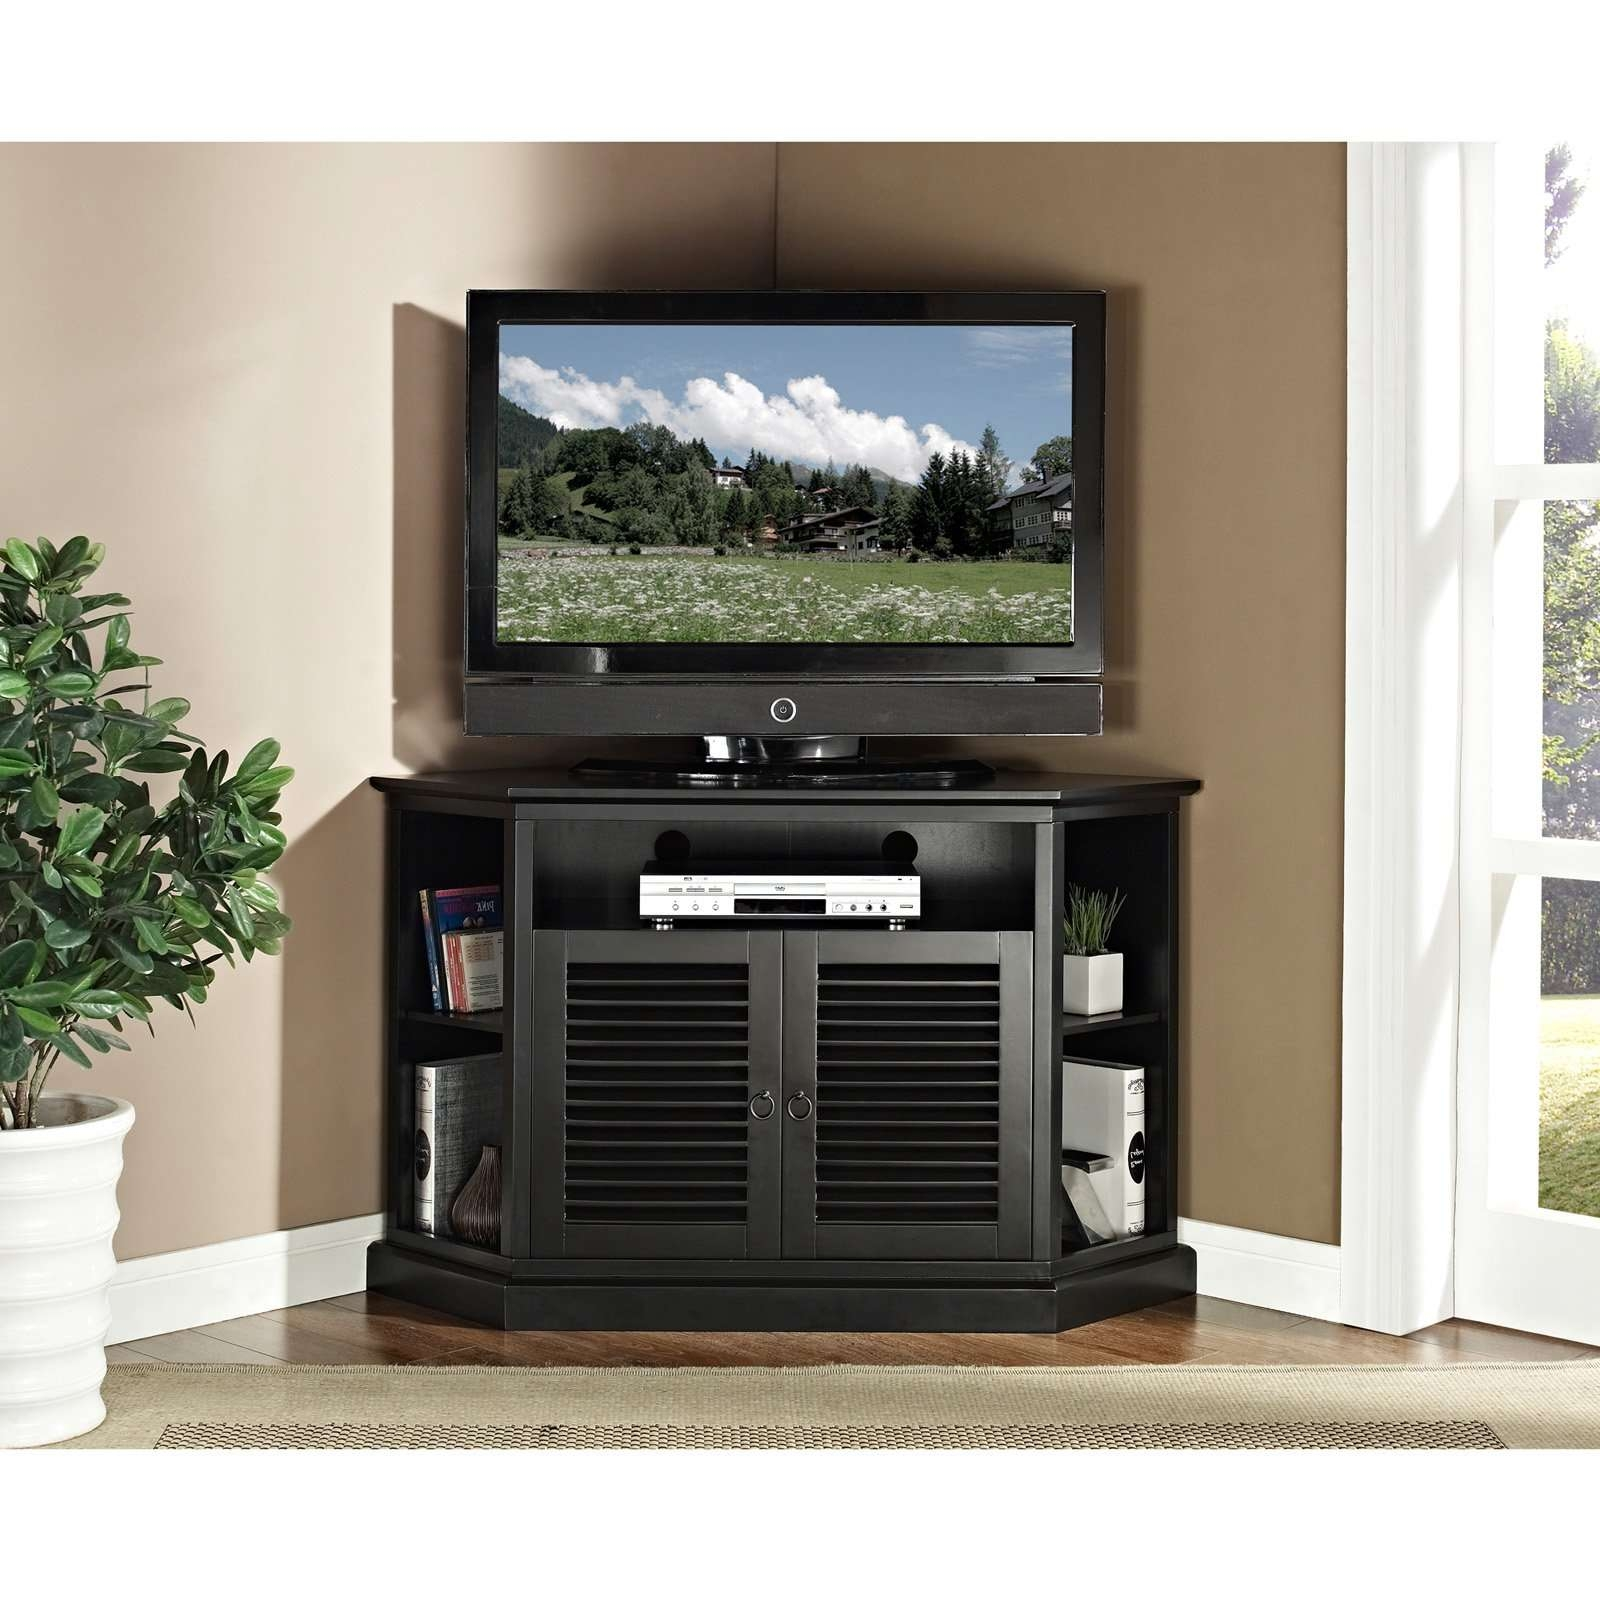 Black Tv Stand Cabinet With Wooden Doors And Corner Shelf For Regarding Black Corner Tv Cabinets With Glass Doors (View 16 of 20)